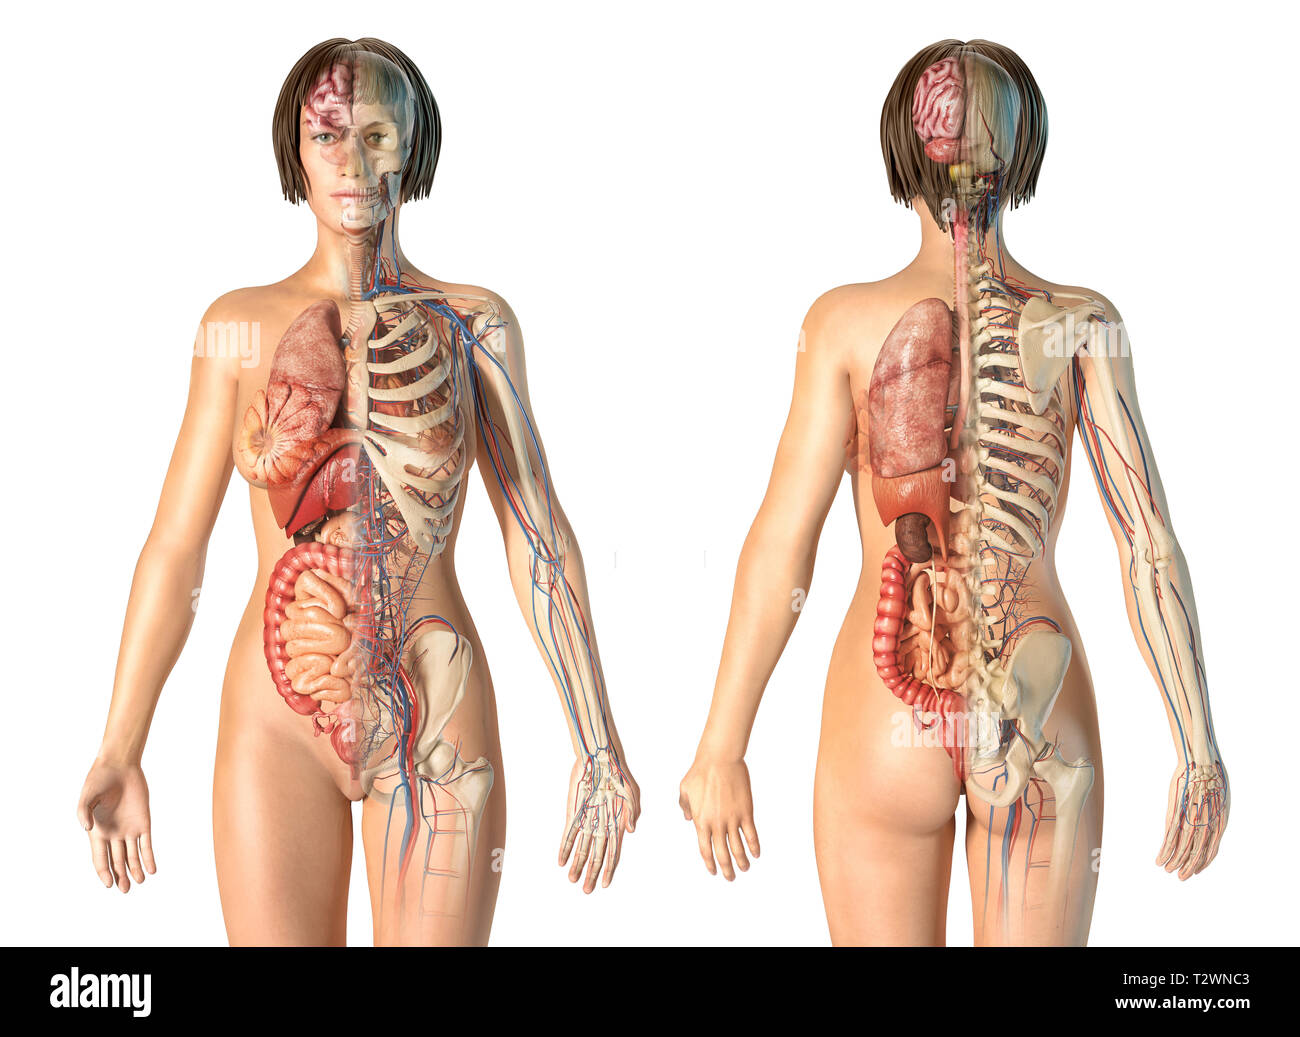 Woman anatomy cardiovascular system with skeleton and internal organs, rear and front views. - Stock Image